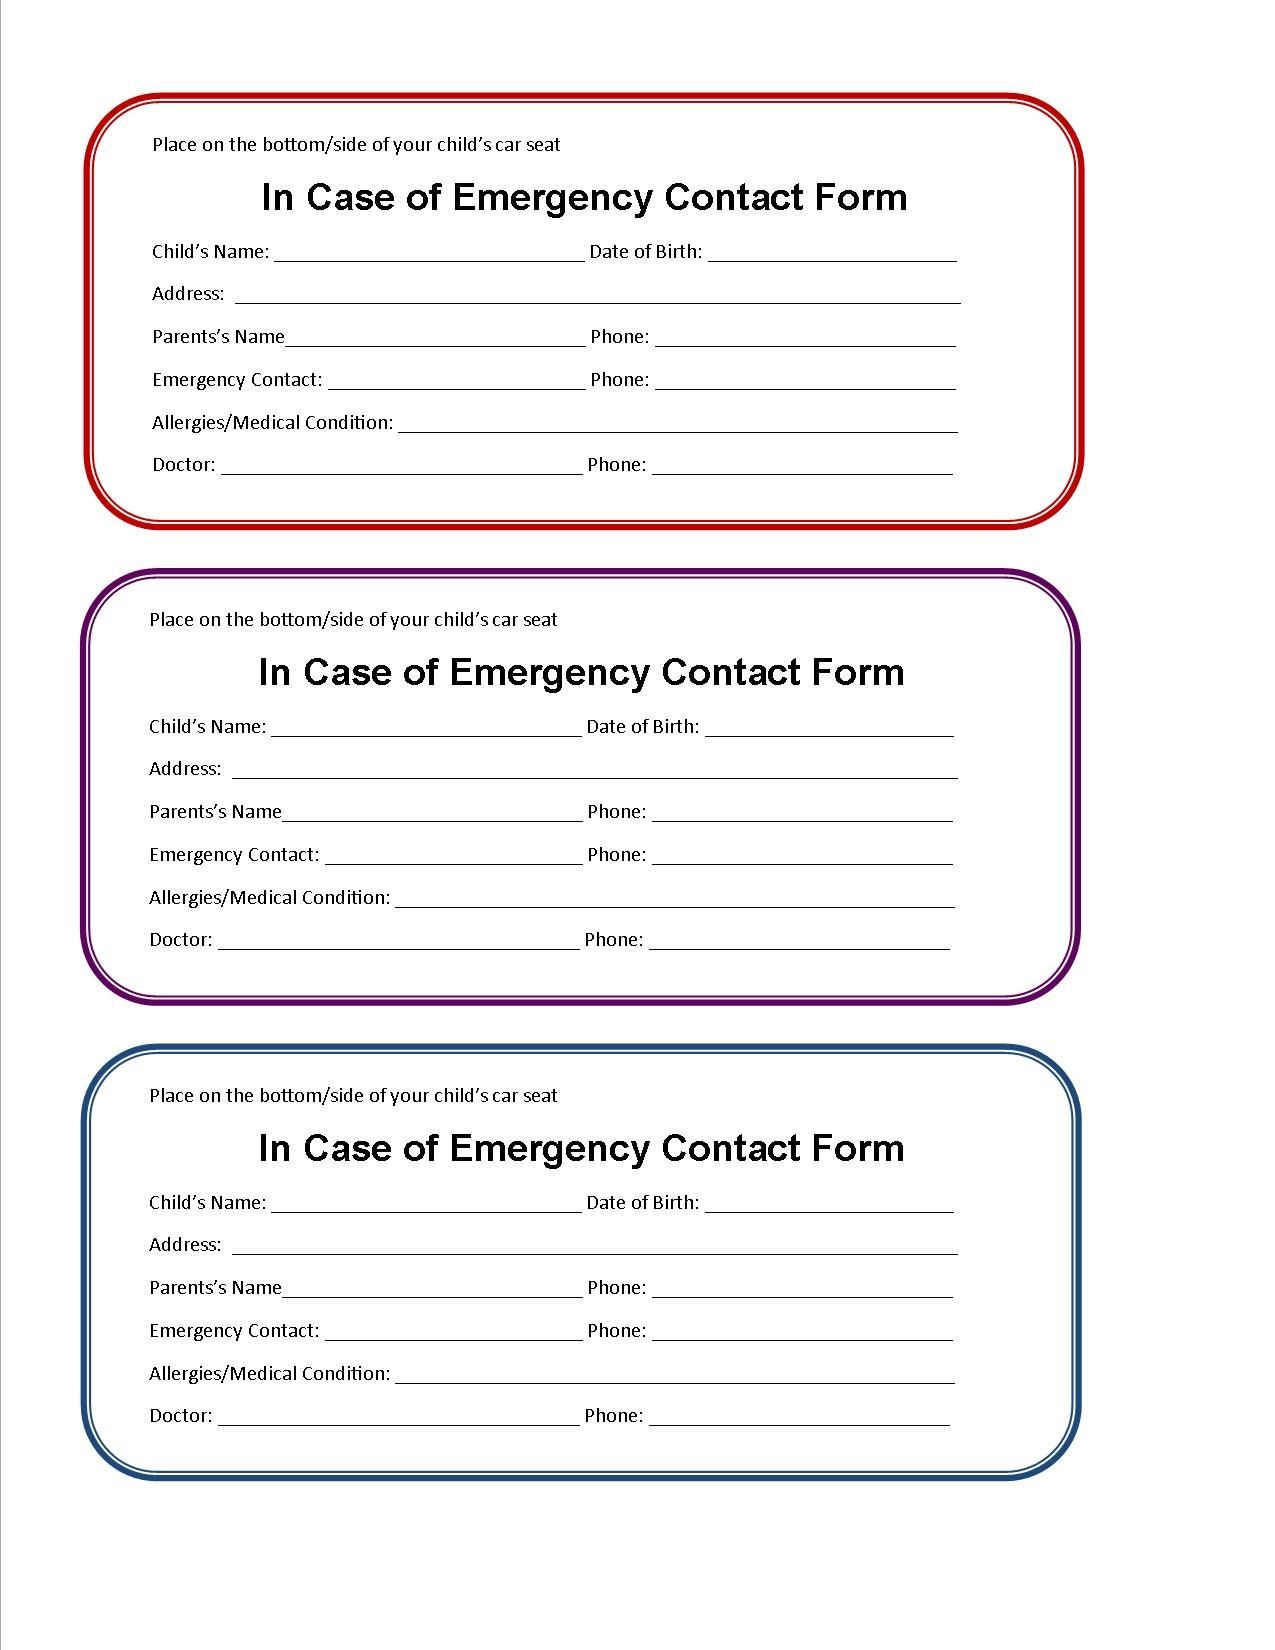 Printable Emergency Contact Form For Car Seat | Super Mom I Am - Free Printable Child Identification Card